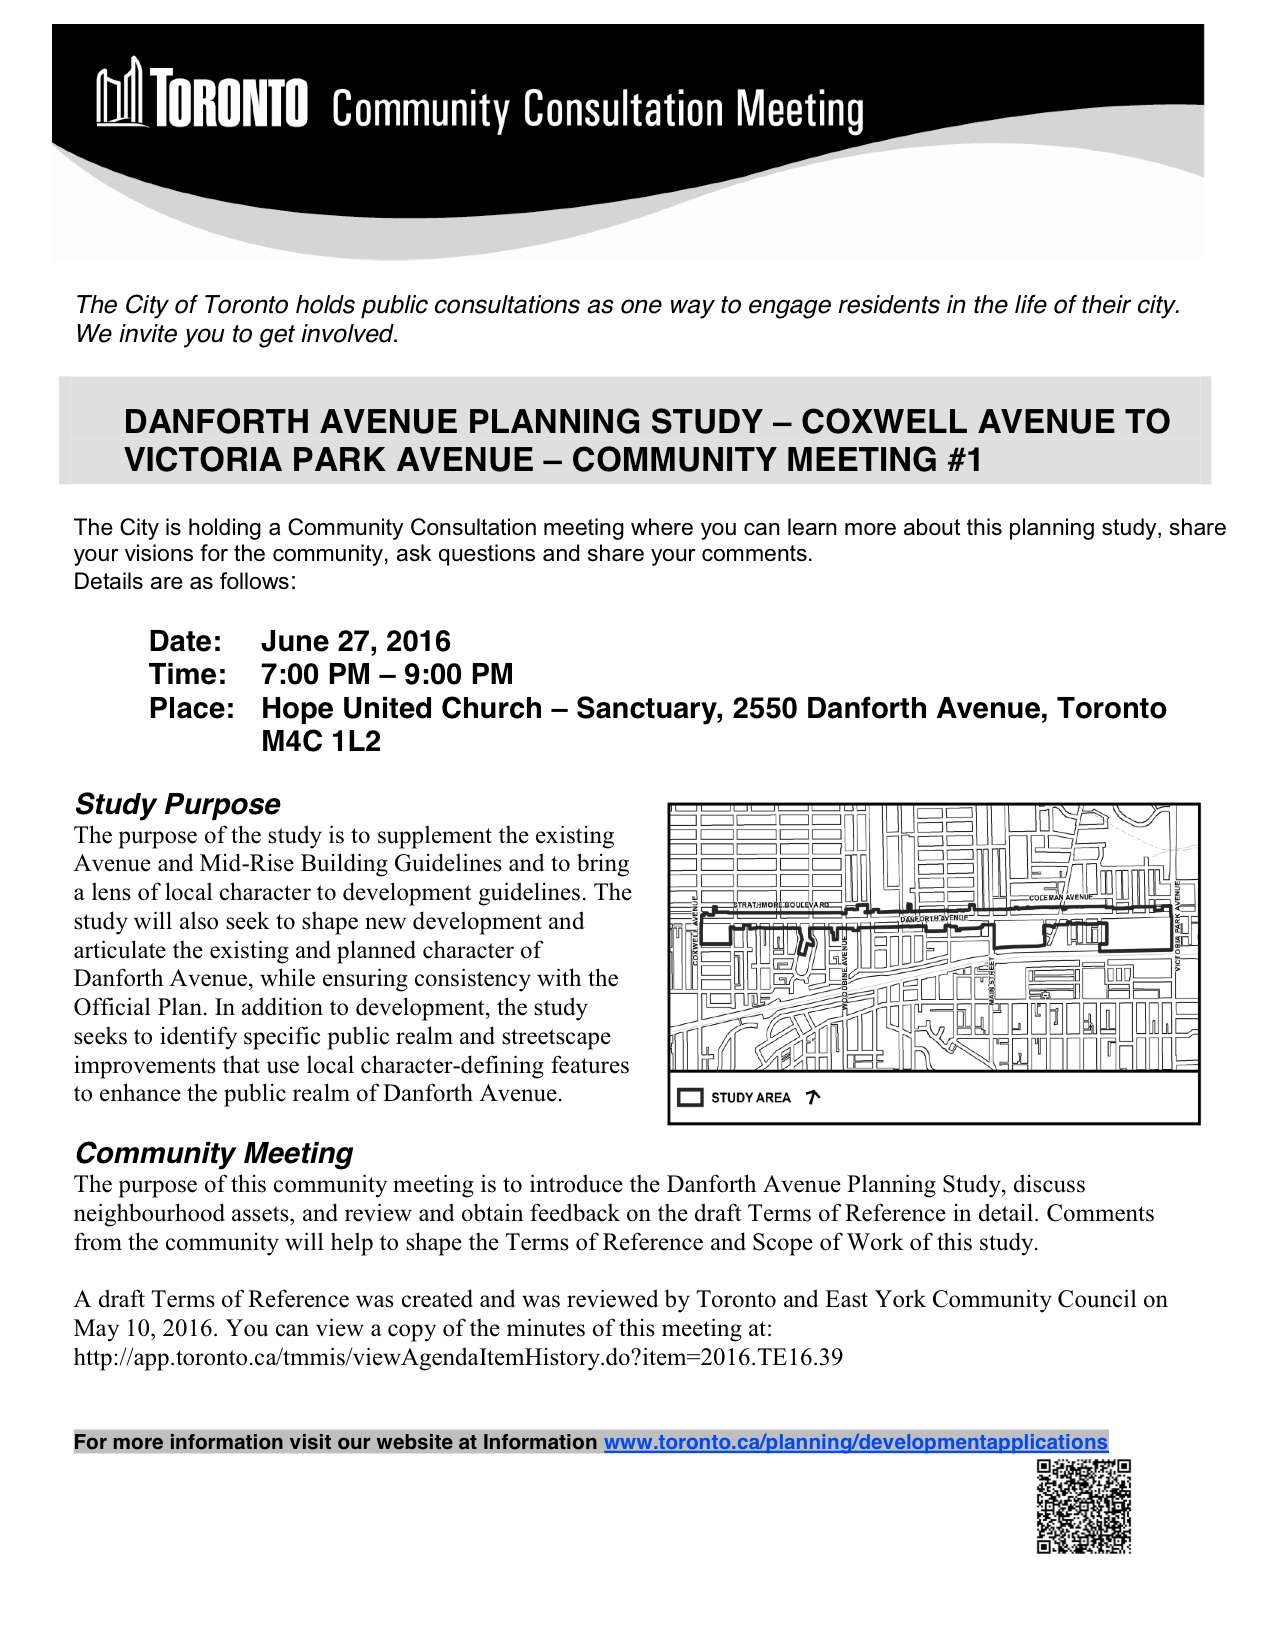 Danforth Avenue Planning Study - CCM #1 - Meeting Notice